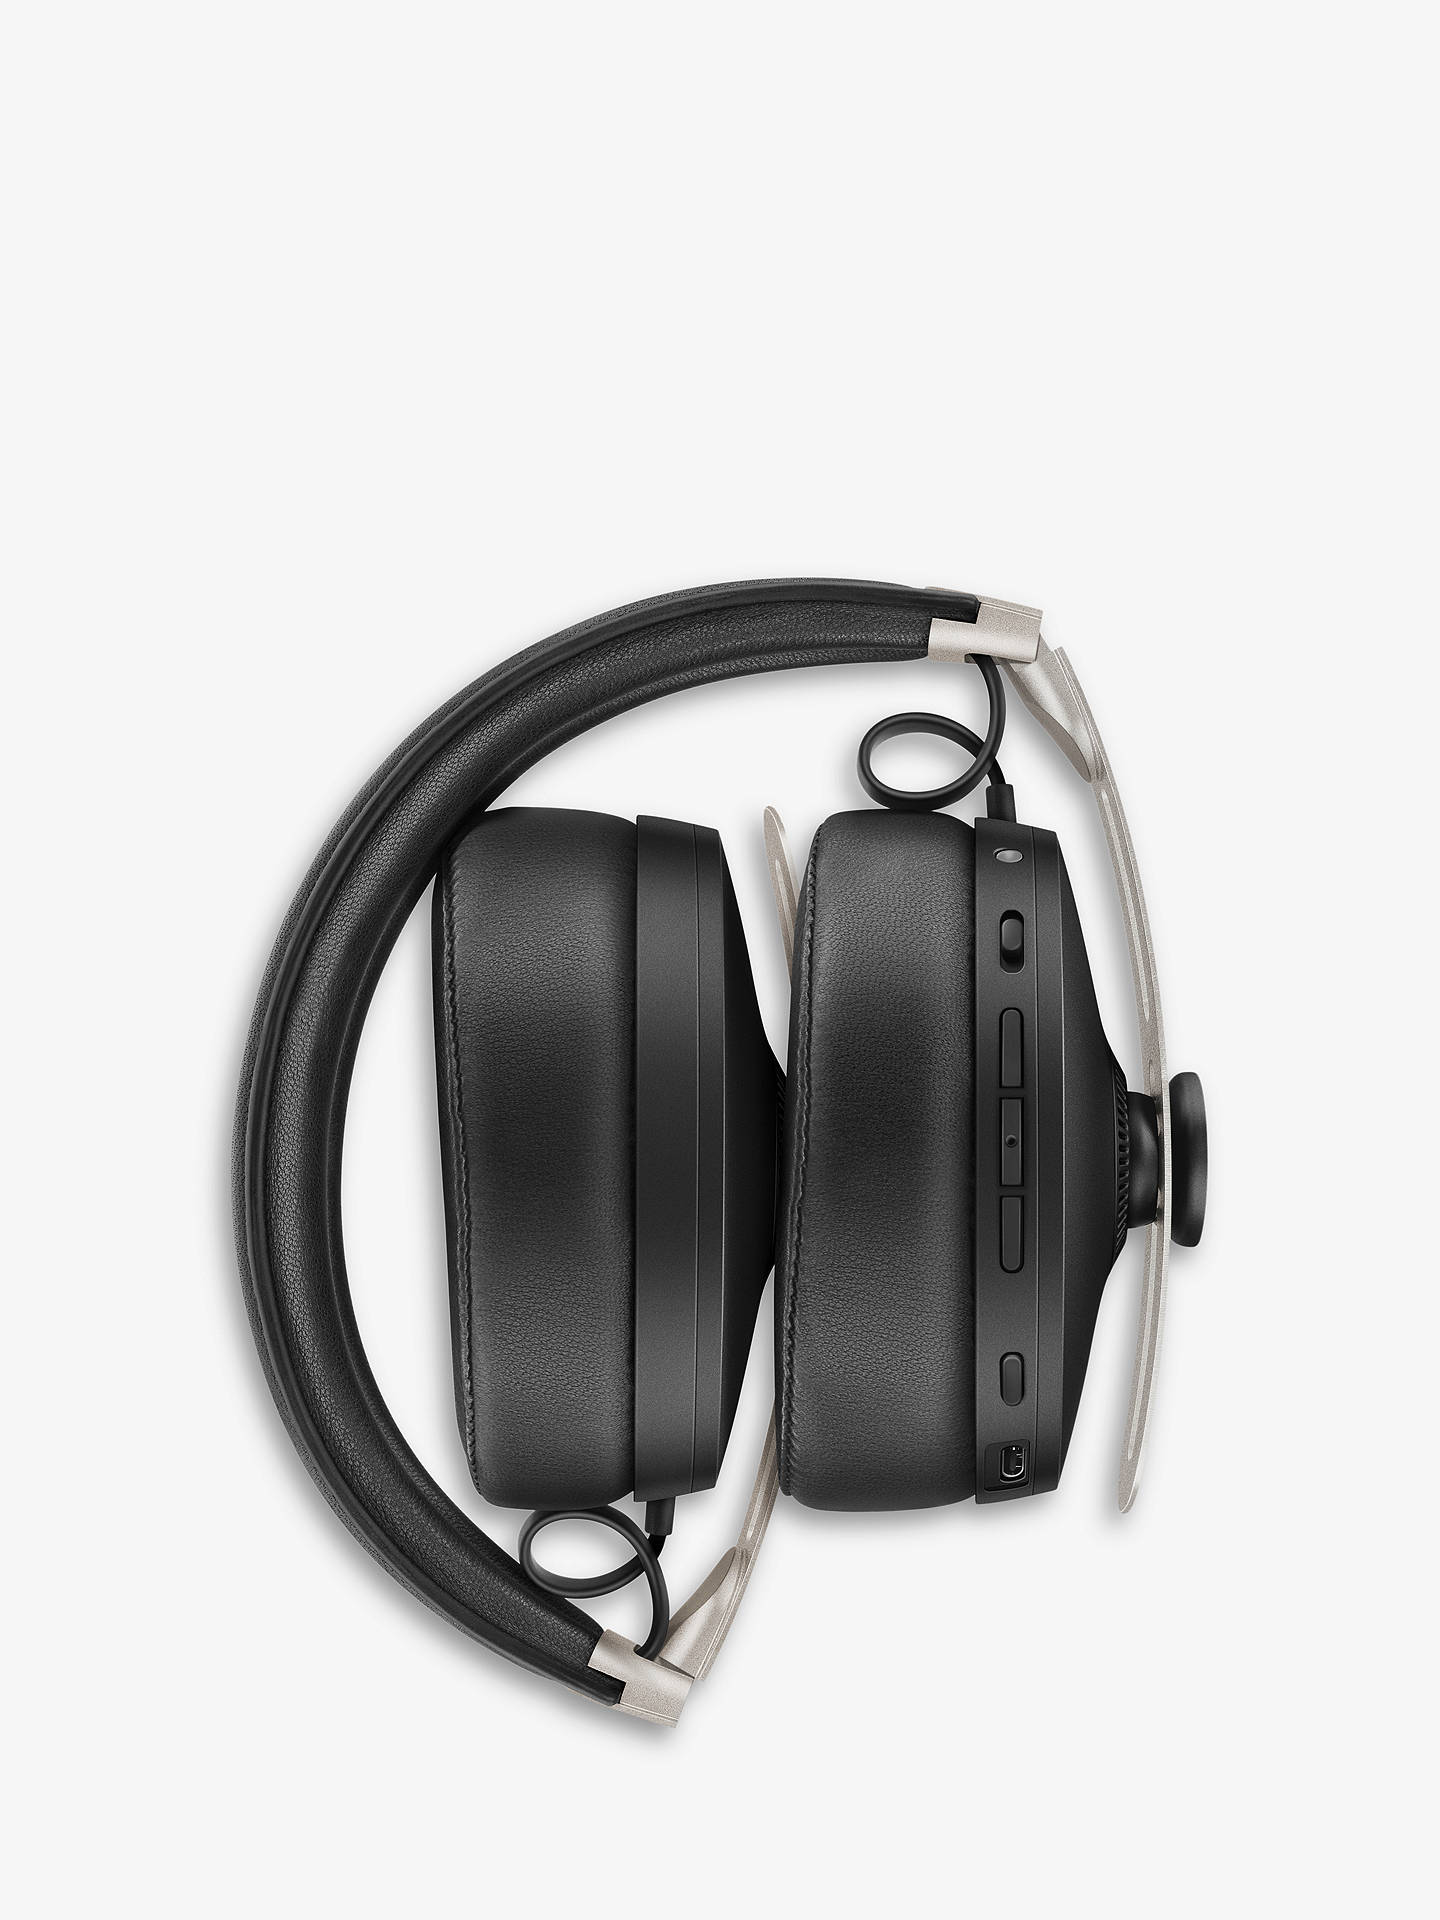 Buy Sennheiser Momentum Wireless (3.0) Noise Cancelling Bluetooth Over-Ear Headphones with Mic/Remote, Black Online at johnlewis.com